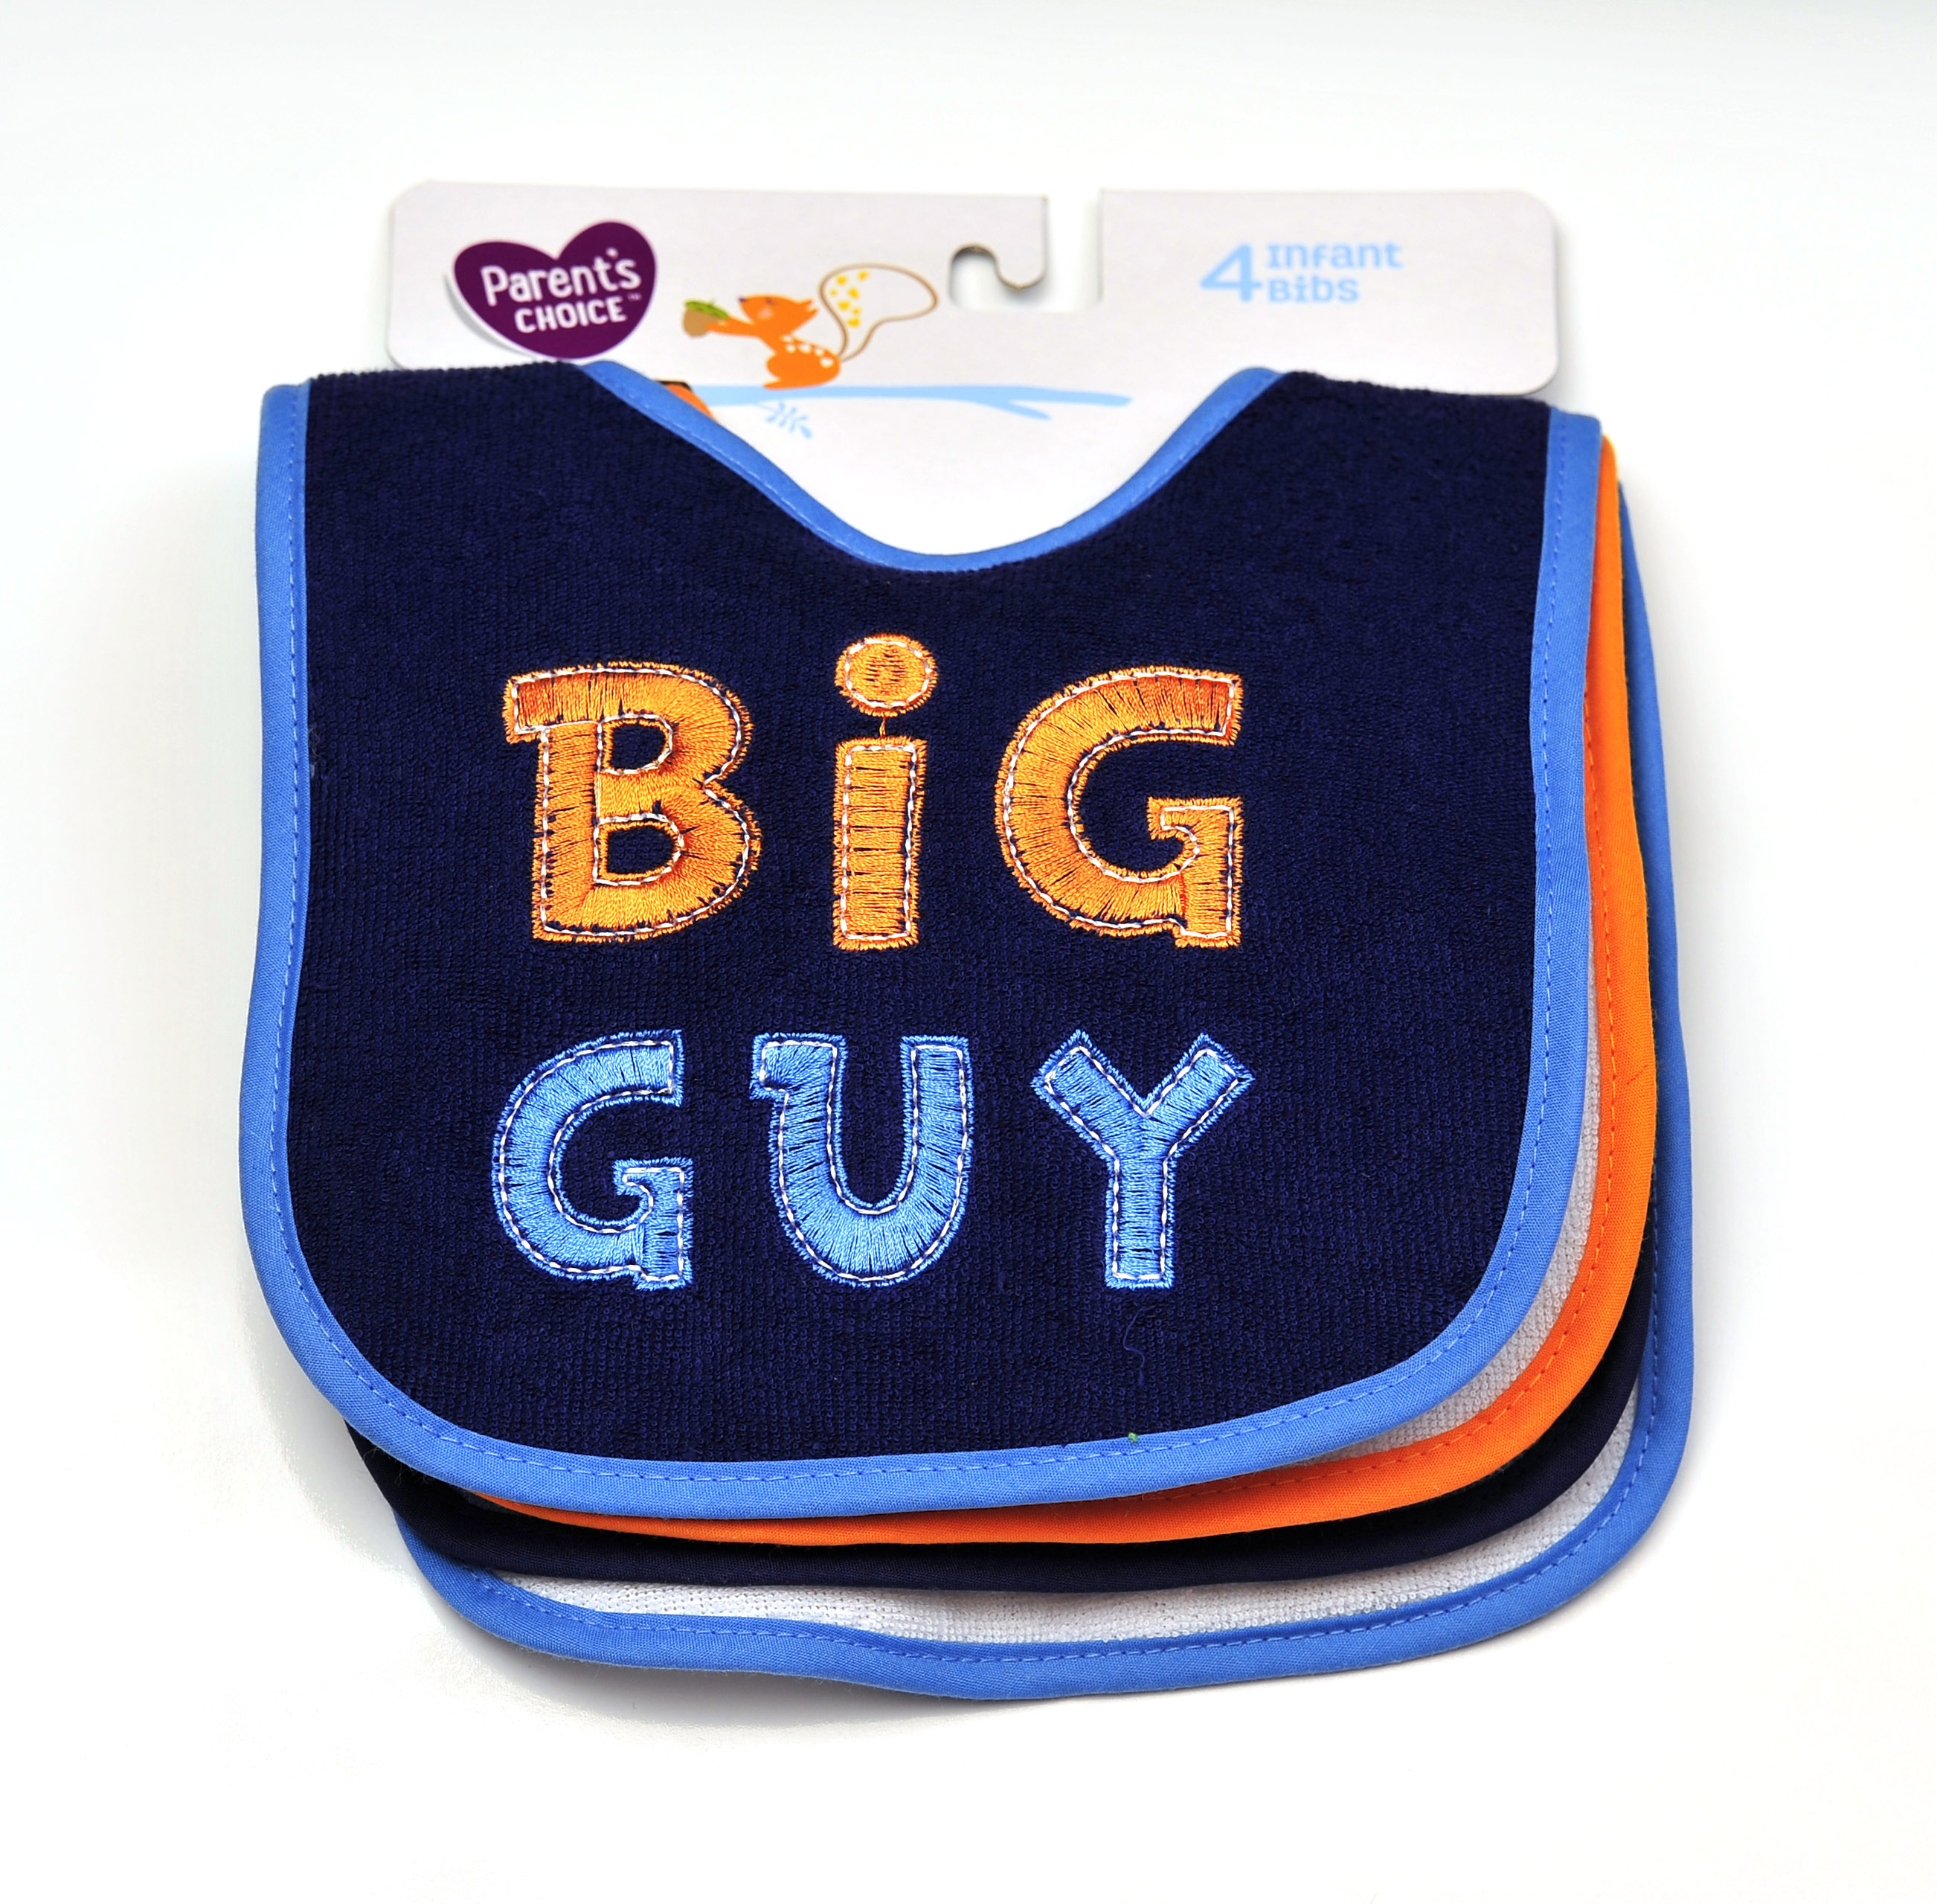 Parent's Choice Boys' 4 Pk. Boy Attitude Bibs